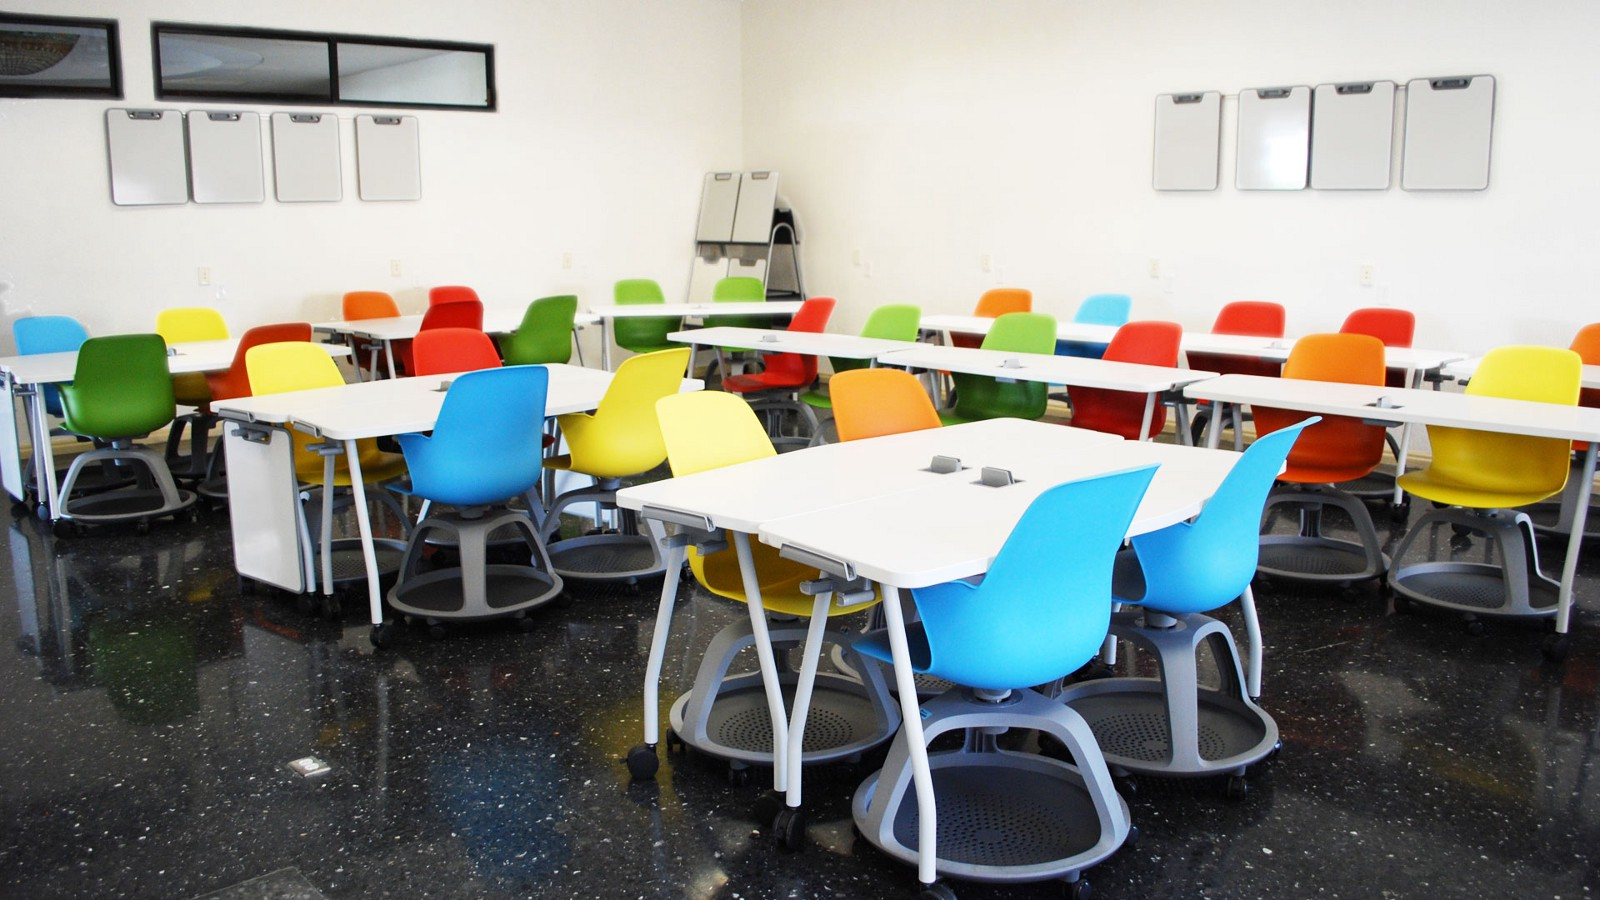 Classroom Design And Student Learning ~ Designing learning environments for the computer science